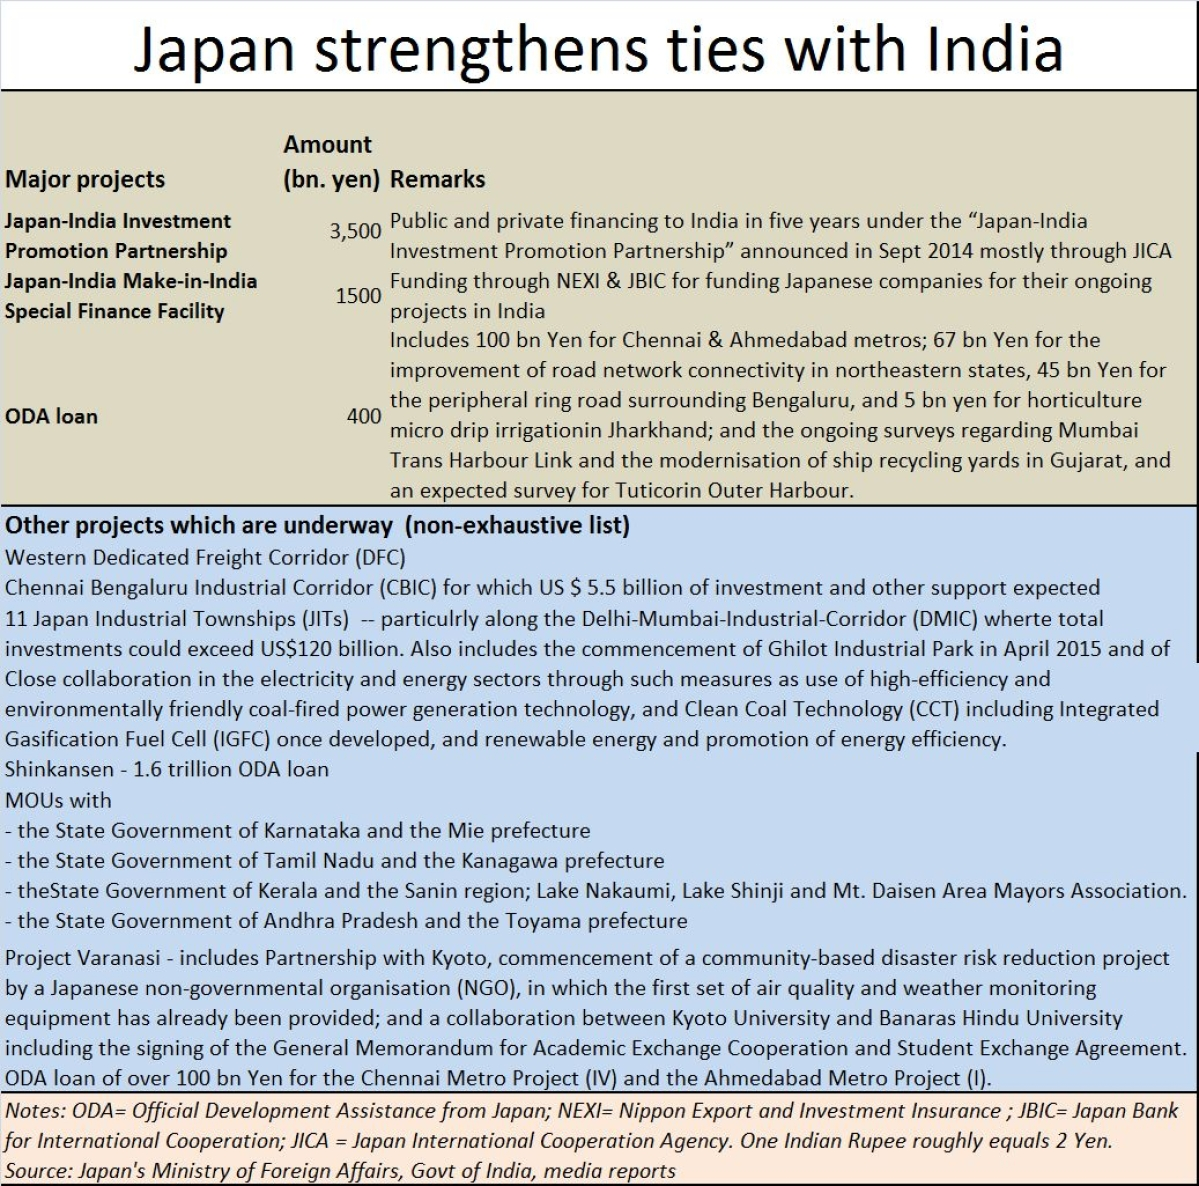 Increasing interdependence of Japan and India